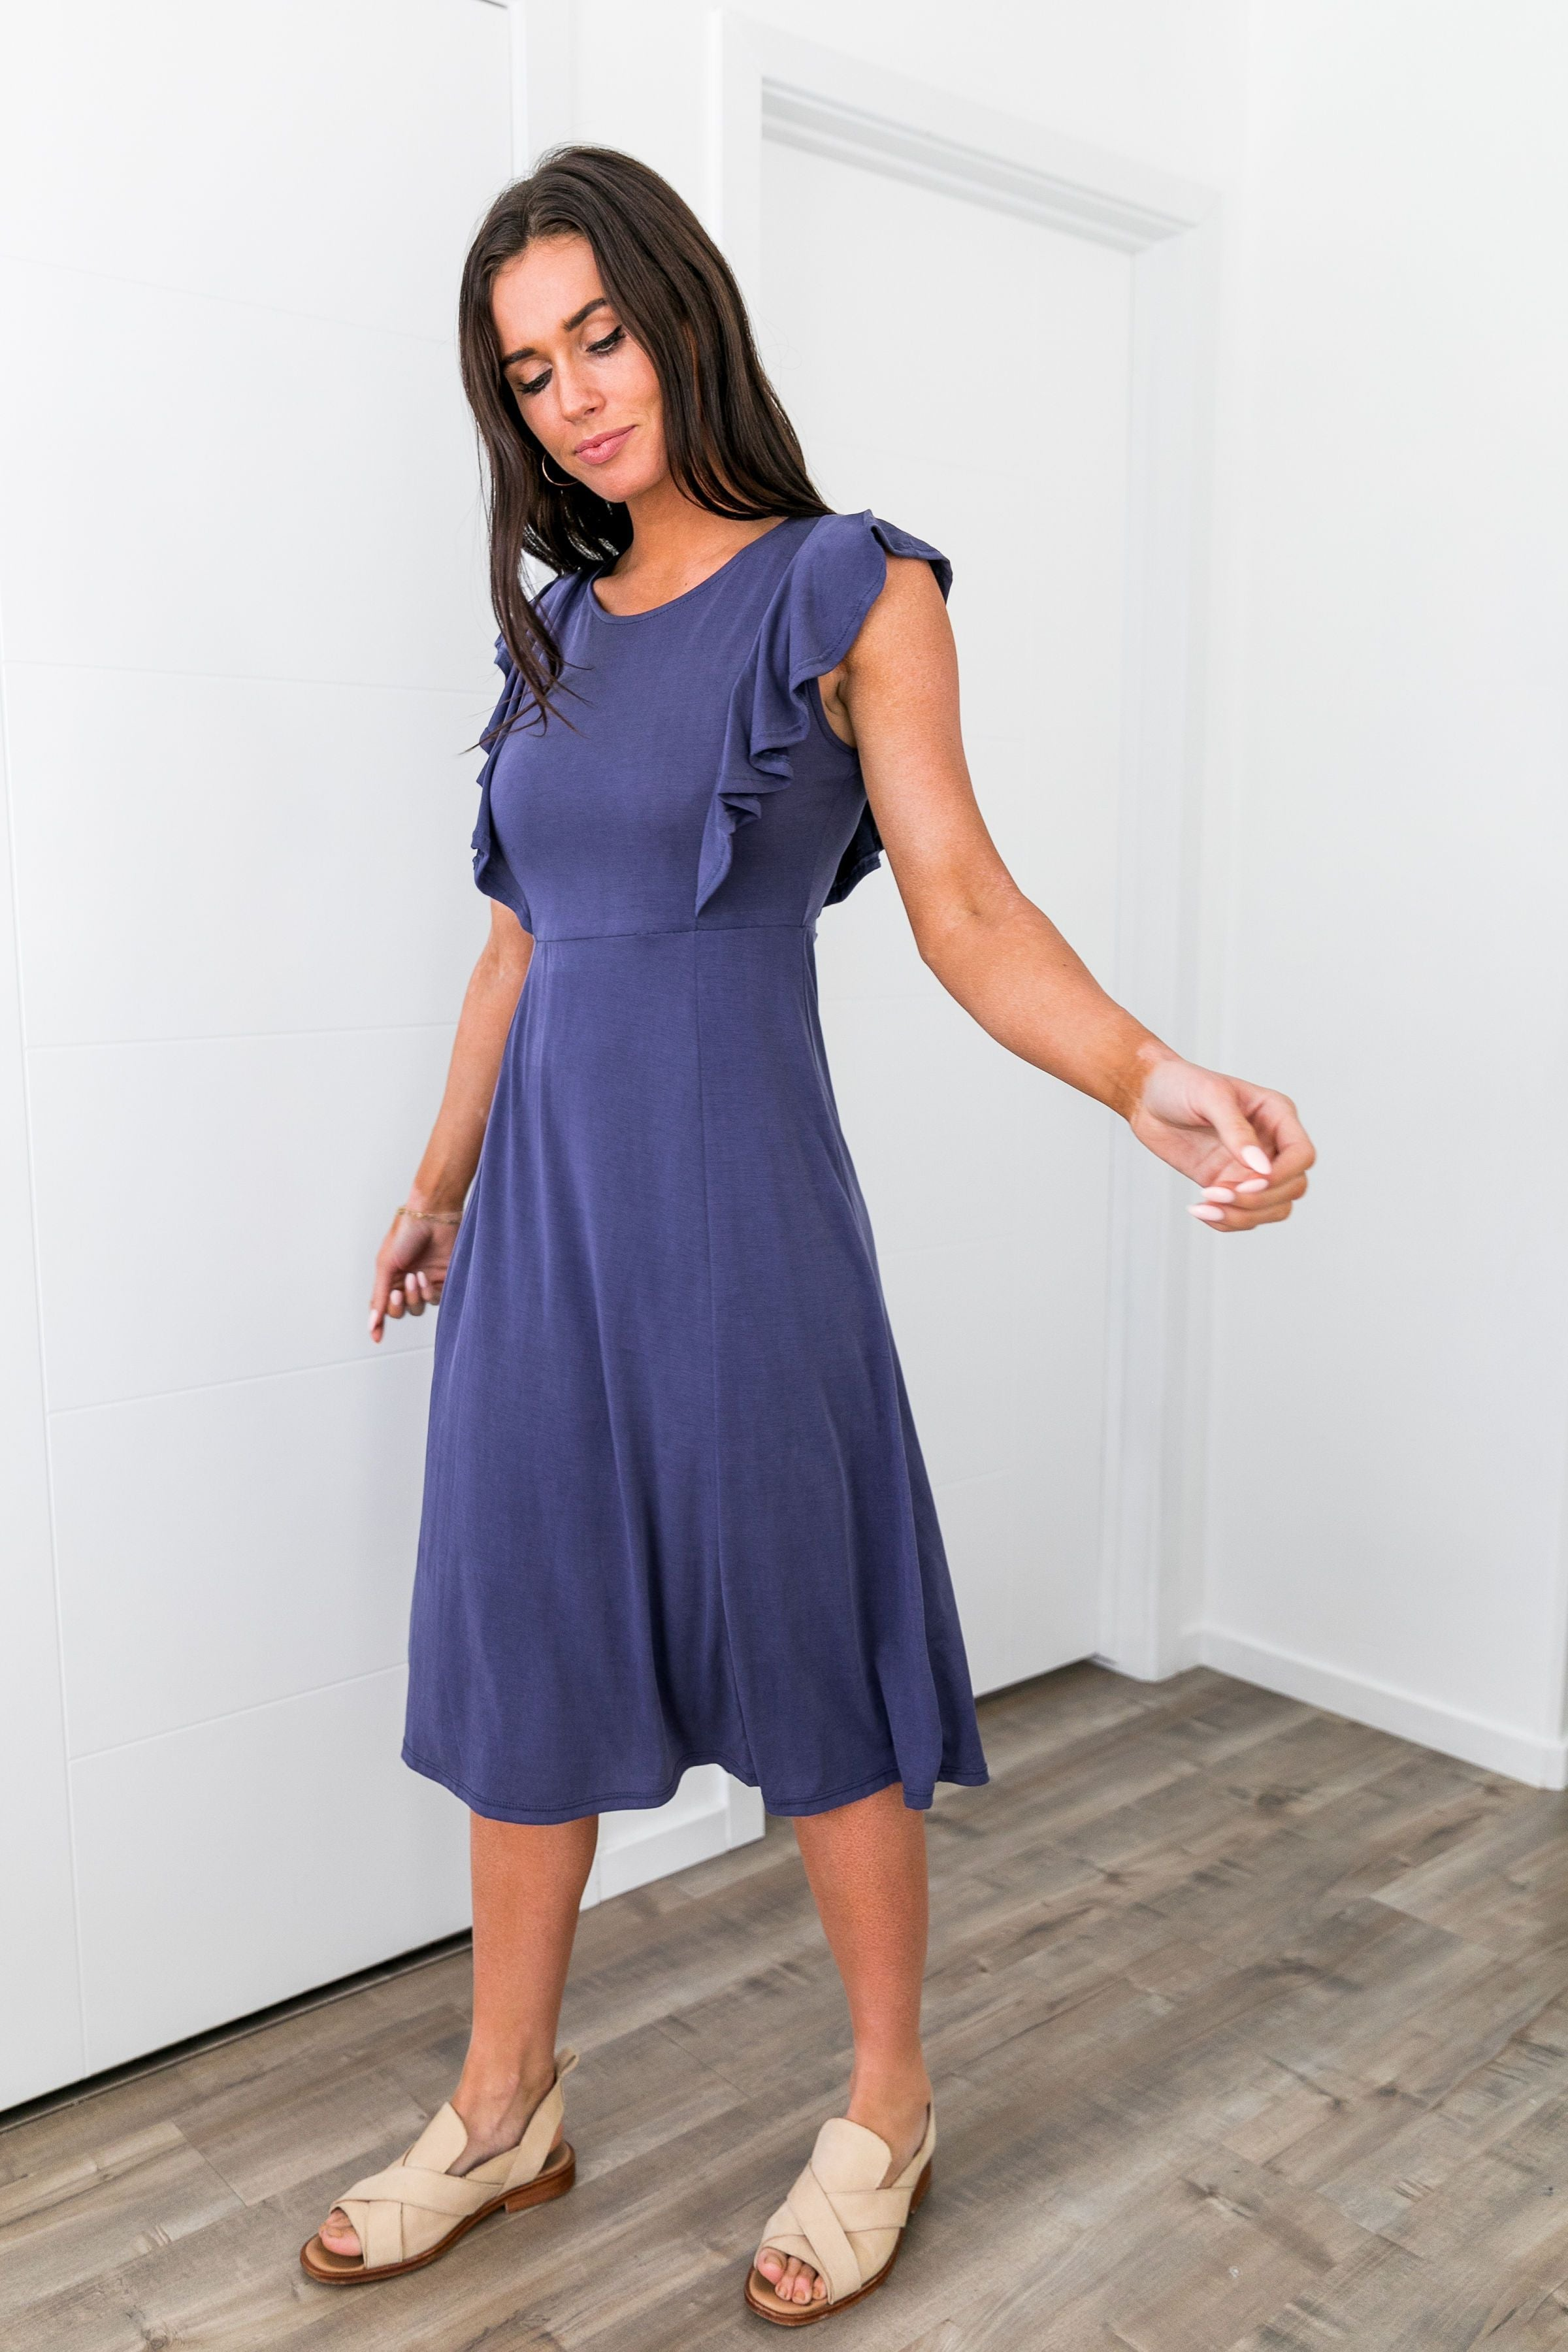 Babydoll Blue Ruffle Sleeve Dress - ALL SALES FINAL